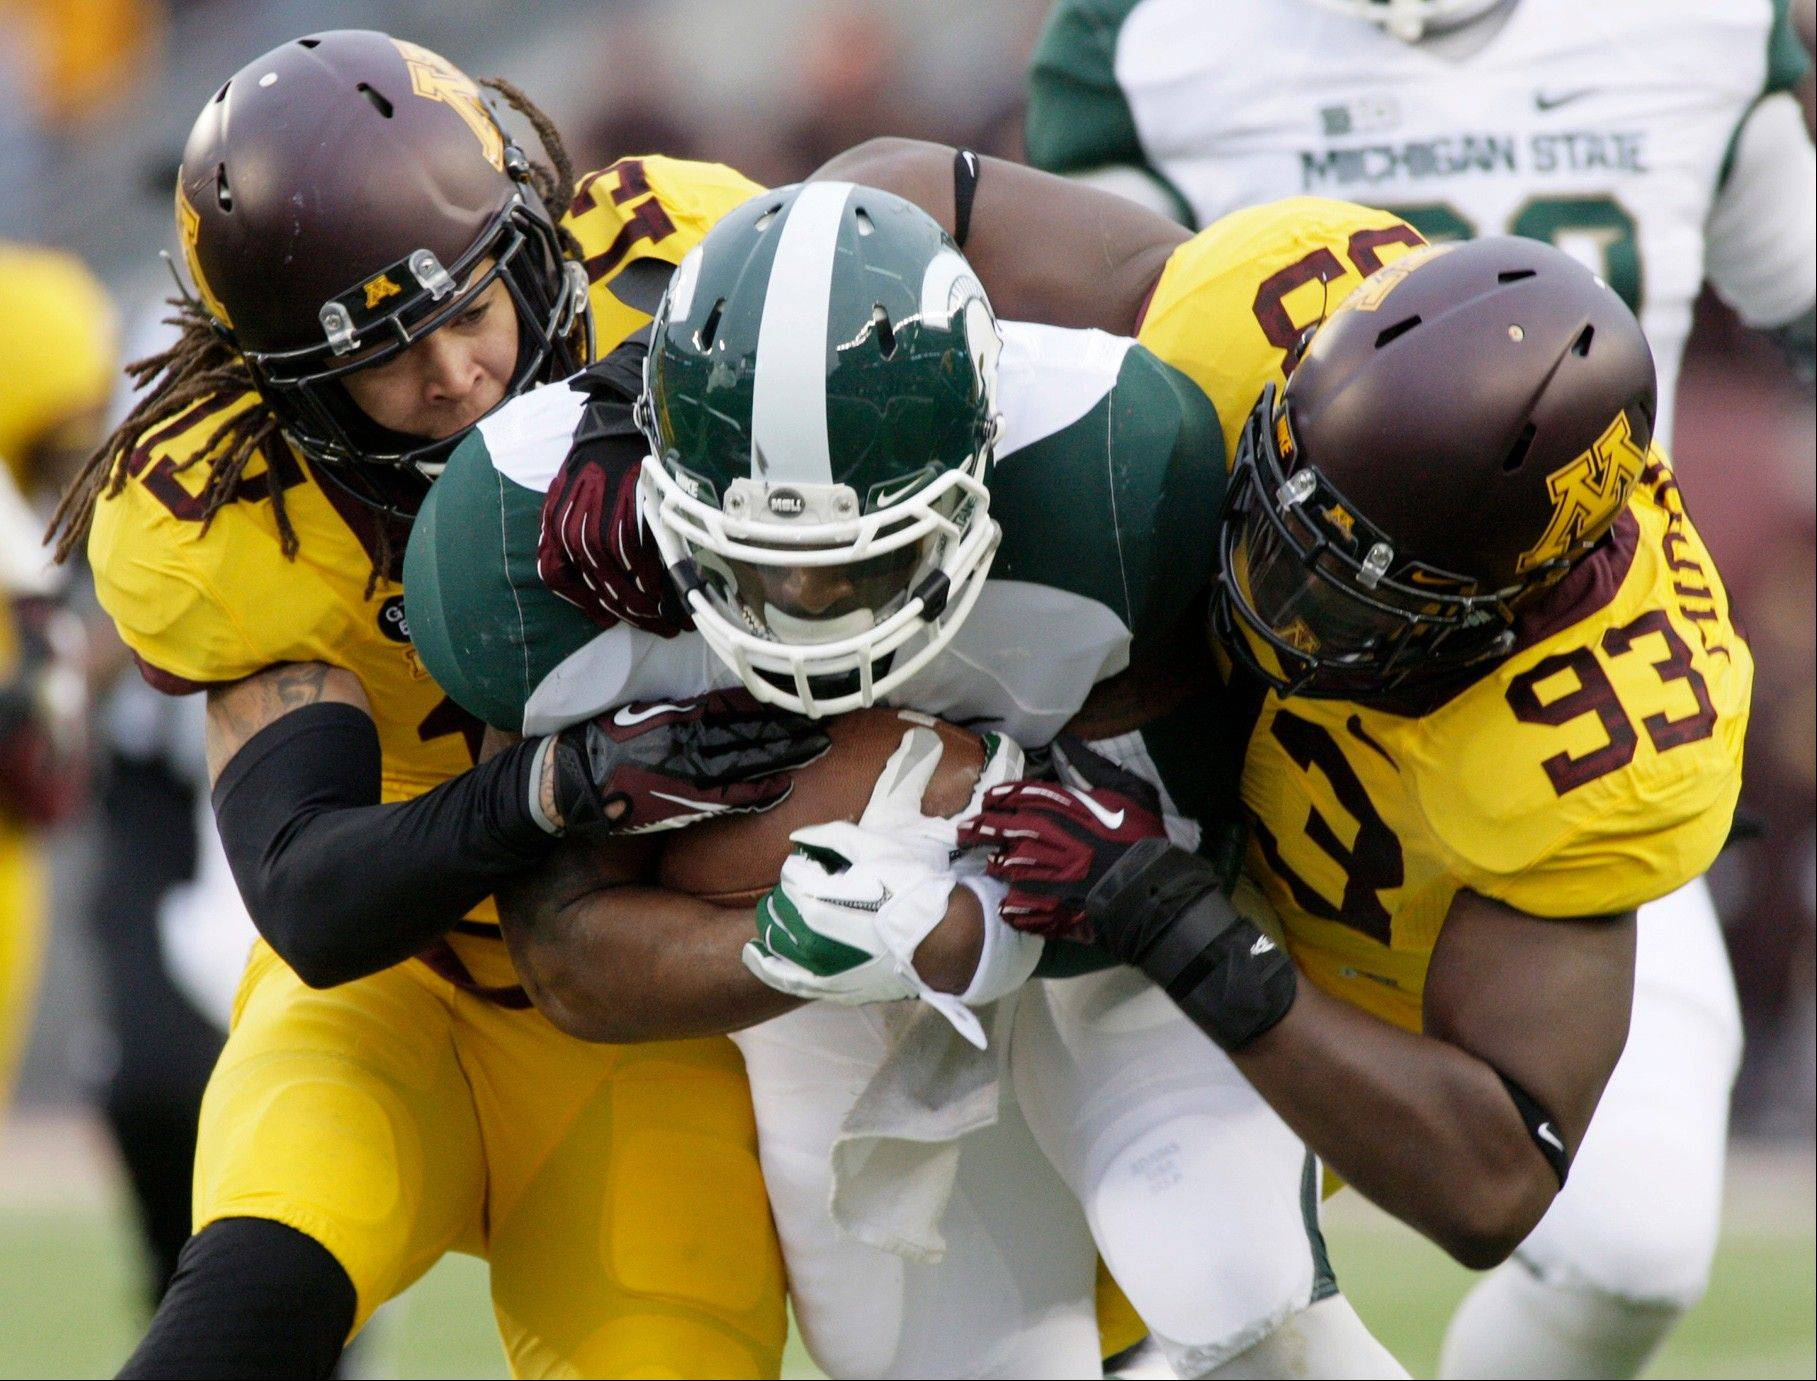 Michigan State running back Le'Veon Bell is tackled by Minnesota defensive back Derrick Wells and defensive end Ben Perry after a 40-yard run Saturday during the first half in Minneapolis.